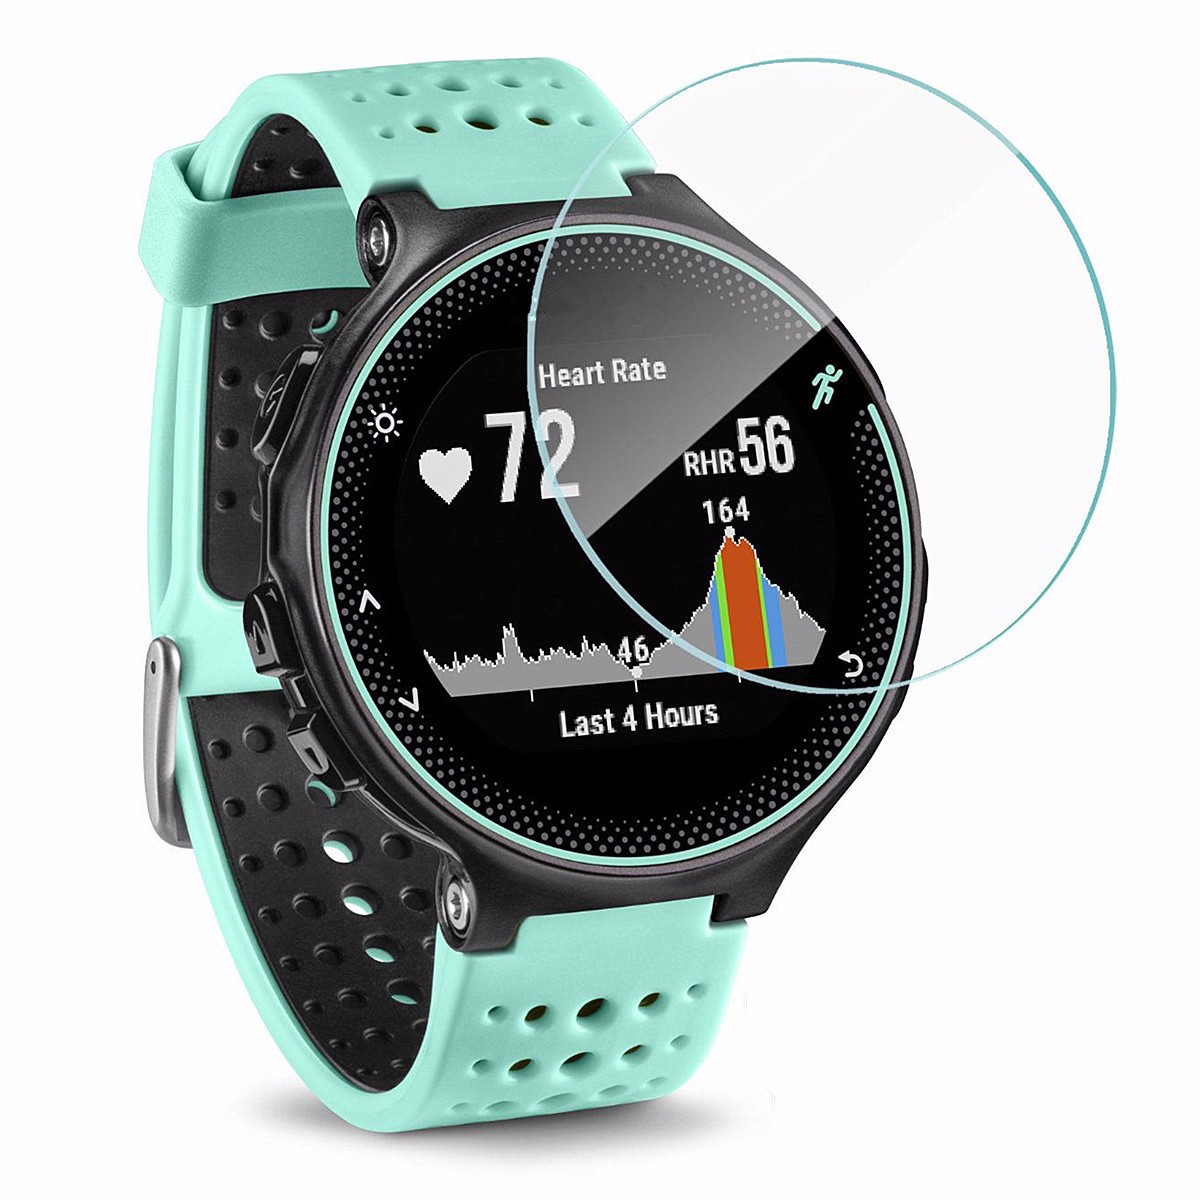 For Garmin Forerunner 235 Watch Tempered Glass Protective Film Anti-Scratch Screen Protector Clear Film Shield Full Cover 3 clear lcd pet film anti scratch screen protector cover for handheld gps navigator garmin oregon 600 600t 650 650t